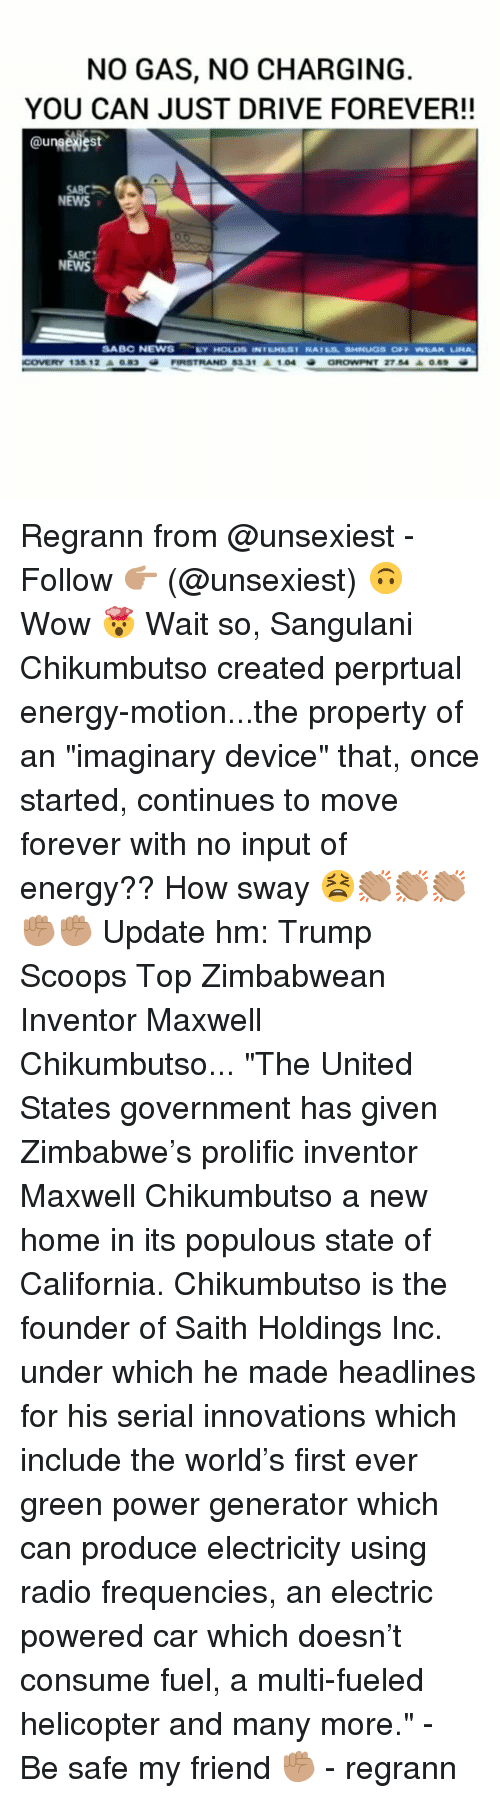 """Energy, Memes, and News: NO GAS, NO CHARGING  YOU CAN JUST DRIVE FOREVER!!  @unsewest  SABC 、  NEWS  SABC  NEWS  2754 ▲069  COVERY 135 12O83  FIRSTRAND 8331 1.04 Regrann from @unsexiest - Follow 👉🏽 (@unsexiest) 🙃 Wow 🤯 Wait so, Sangulani Chikumbutso created perprtual energy-motion...the property of an """"imaginary device"""" that, once started, continues to move forever with no input of energy?? How sway 😫👏🏽👏🏽👏🏽✊🏽✊🏽 Update hm: Trump Scoops Top Zimbabwean Inventor Maxwell Chikumbutso... """"The United States government has given Zimbabwe's prolific inventor Maxwell Chikumbutso a new home in its populous state of California. Chikumbutso is the founder of Saith Holdings Inc. under which he made headlines for his serial innovations which include the world's first ever green power generator which can produce electricity using radio frequencies, an electric powered car which doesn't consume fuel, a multi-fueled helicopter and many more."""" - Be safe my friend ✊🏽 - regrann"""